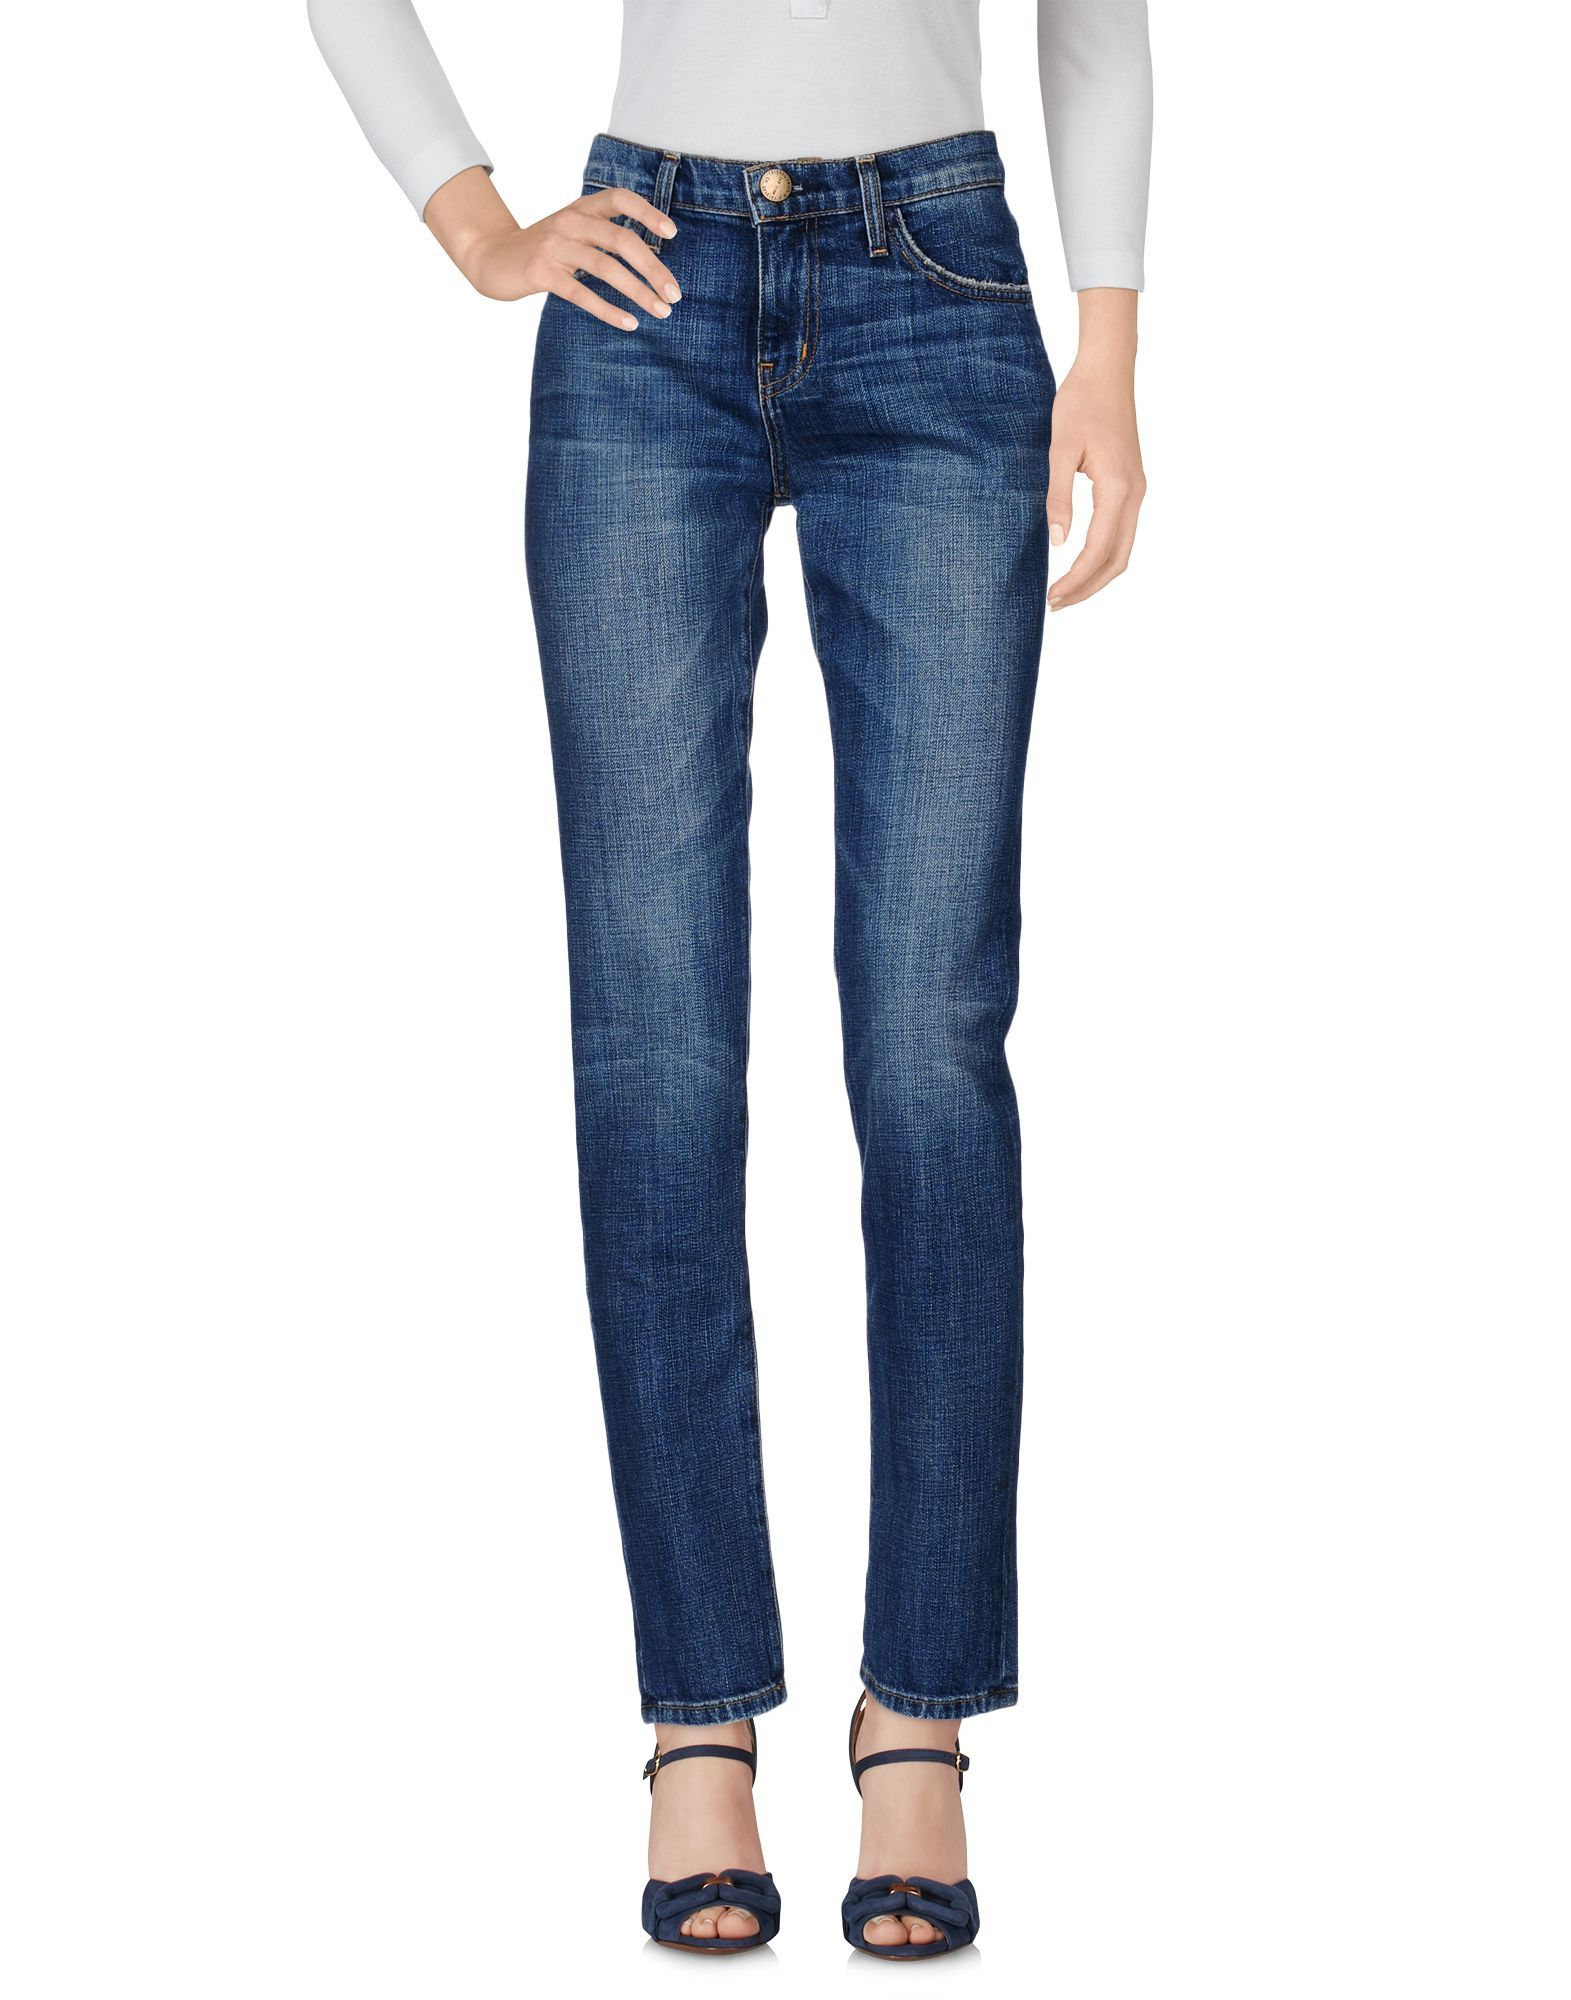 Current/Elliott Blue Cotton Jeans